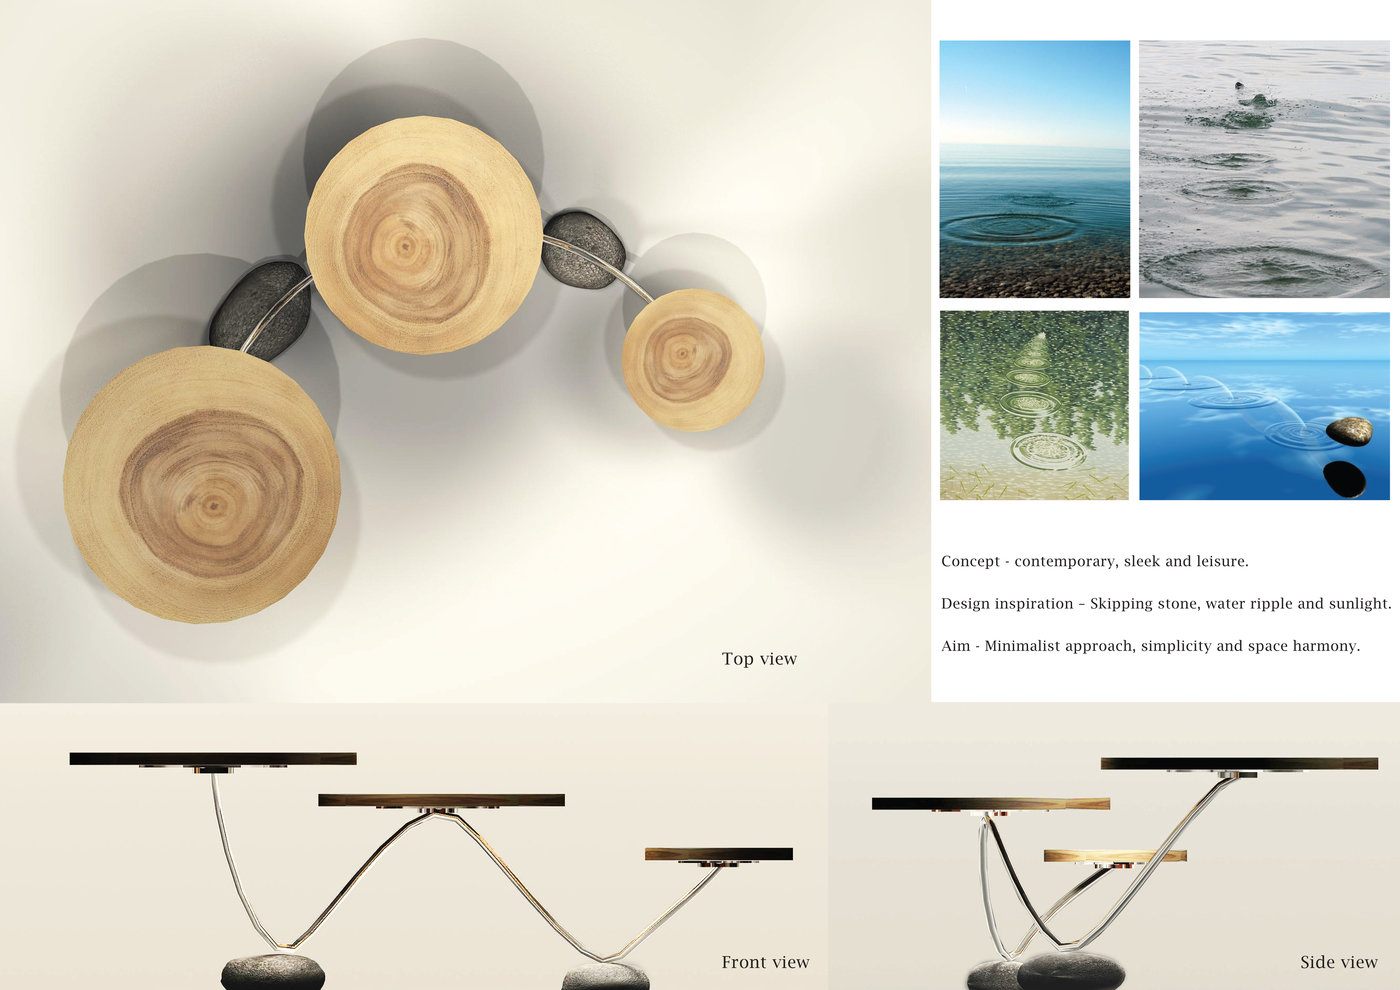 Skipping stone   Mobili furniture design competition  by Shiou Pyng Lim at  Coroflot com. Skipping stone   Mobili furniture design competition  by Shiou